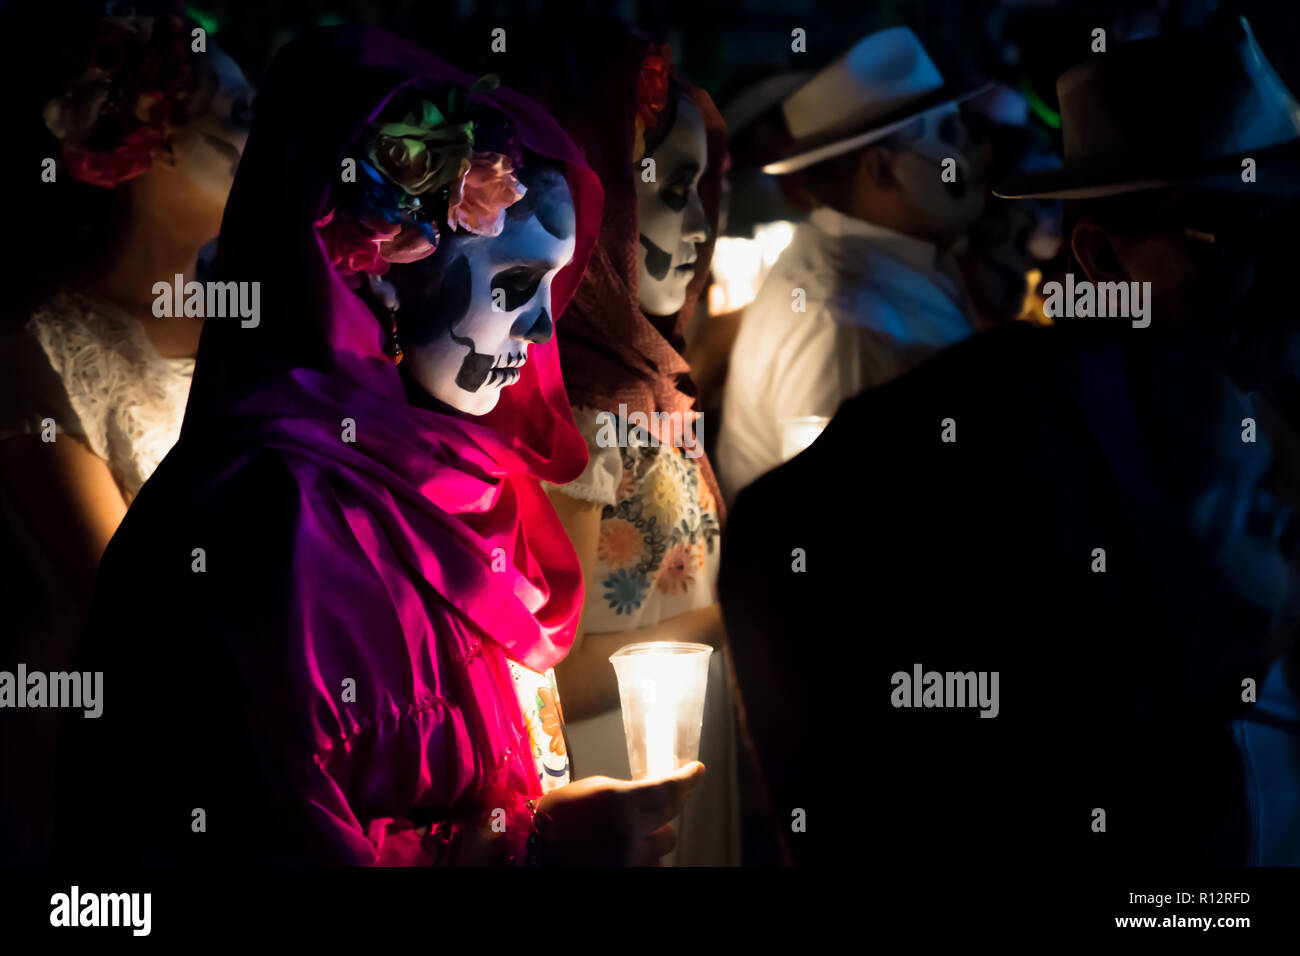 Merida, Cementerio General, Mexico - 31 October 2018: Close up of customed women dressed as Catrinas with skull make-up holding candles at the process - Stock Image